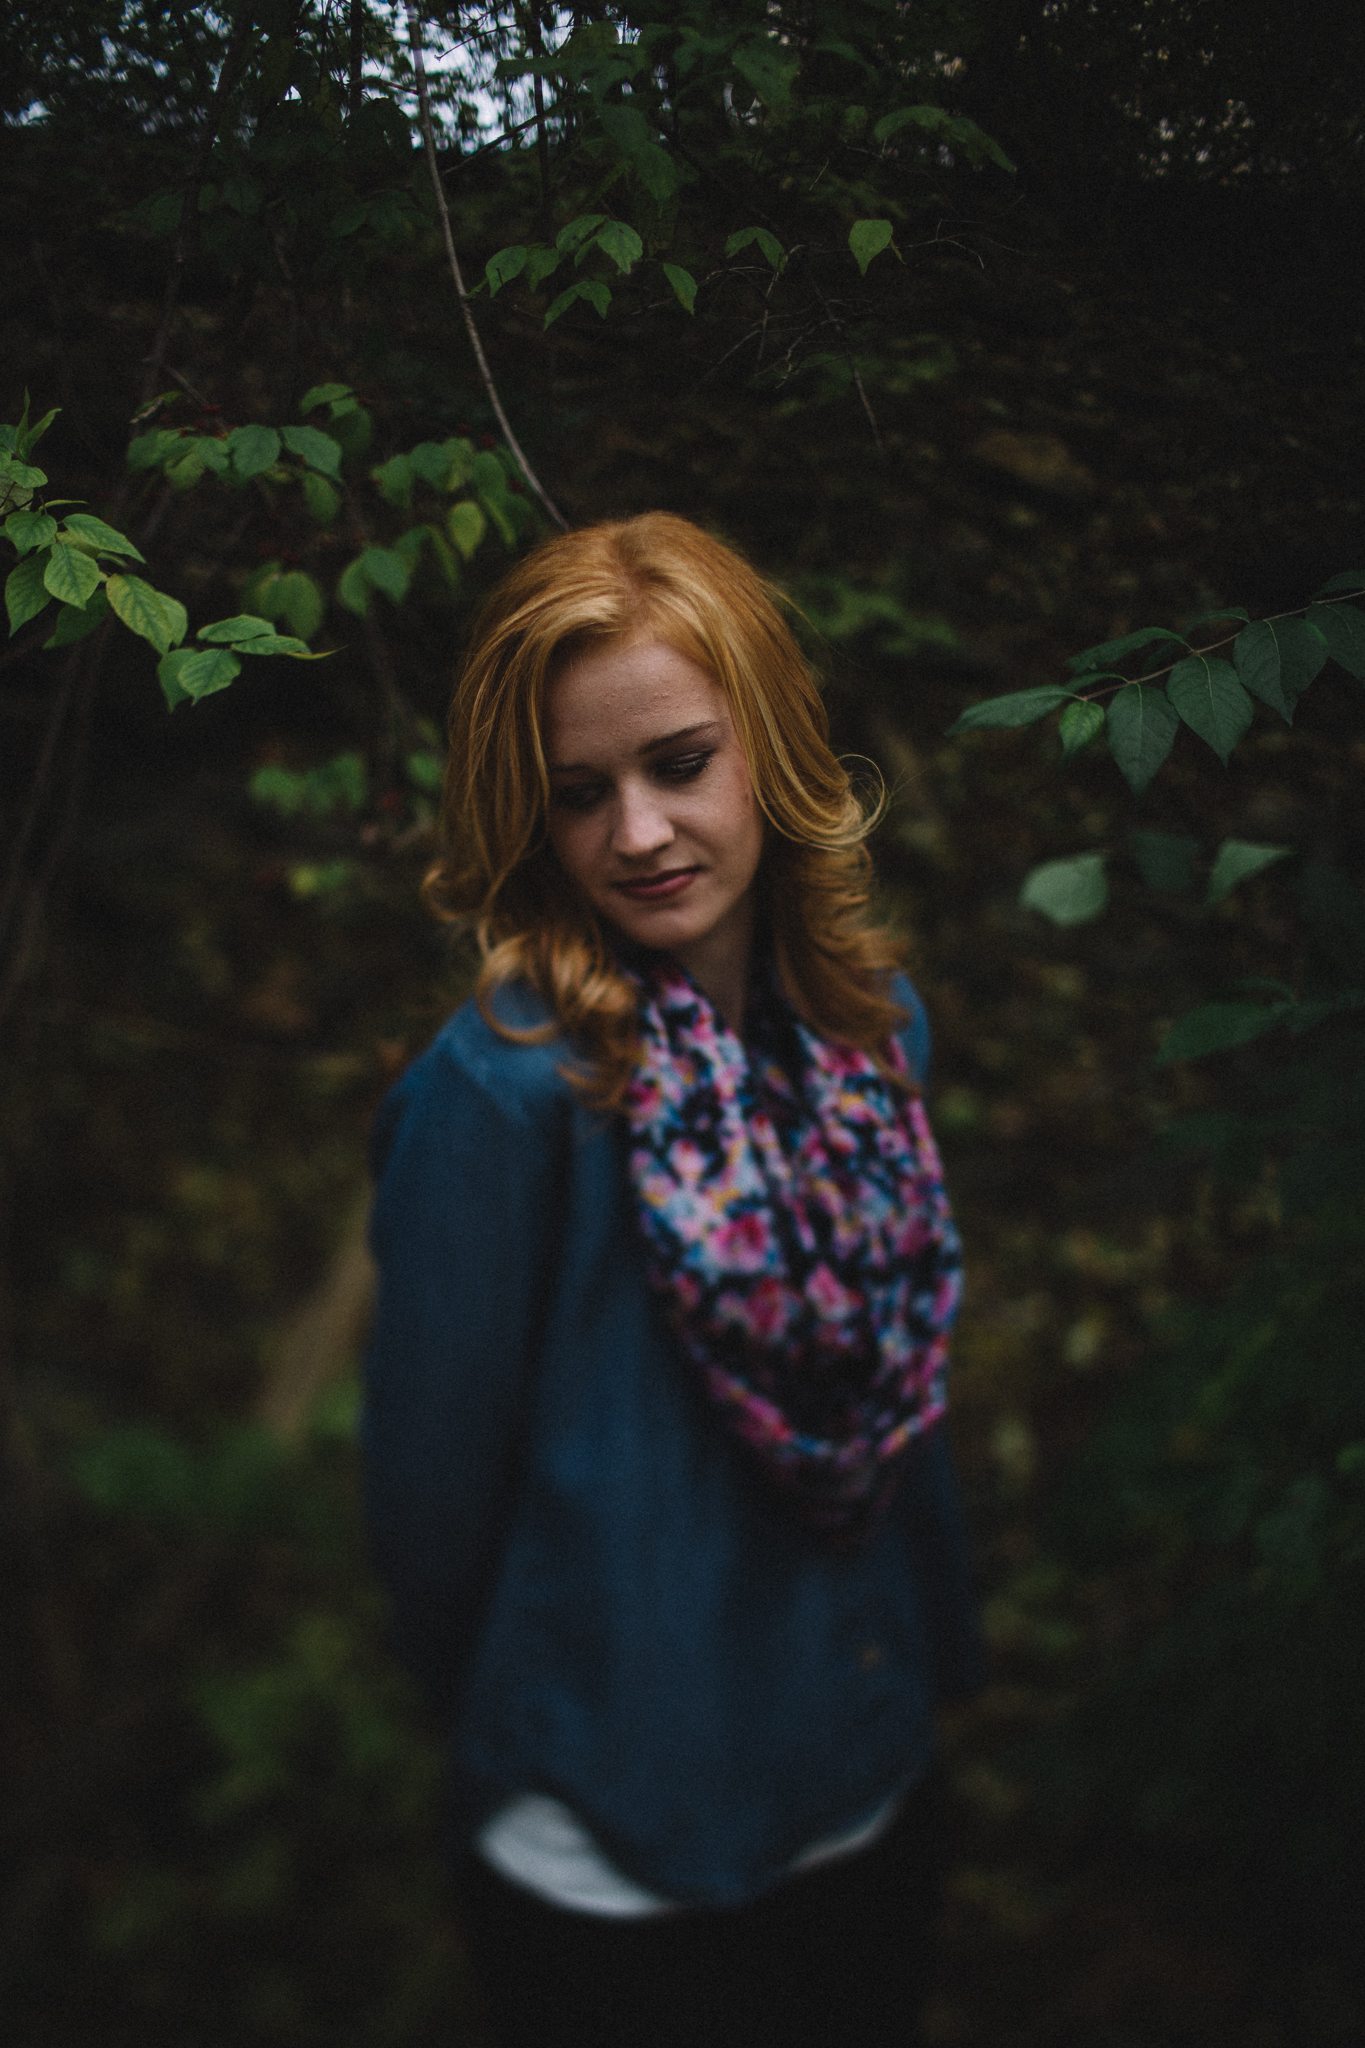 sarah cusson photography 2015 fort wayne senior photography-27.jpg